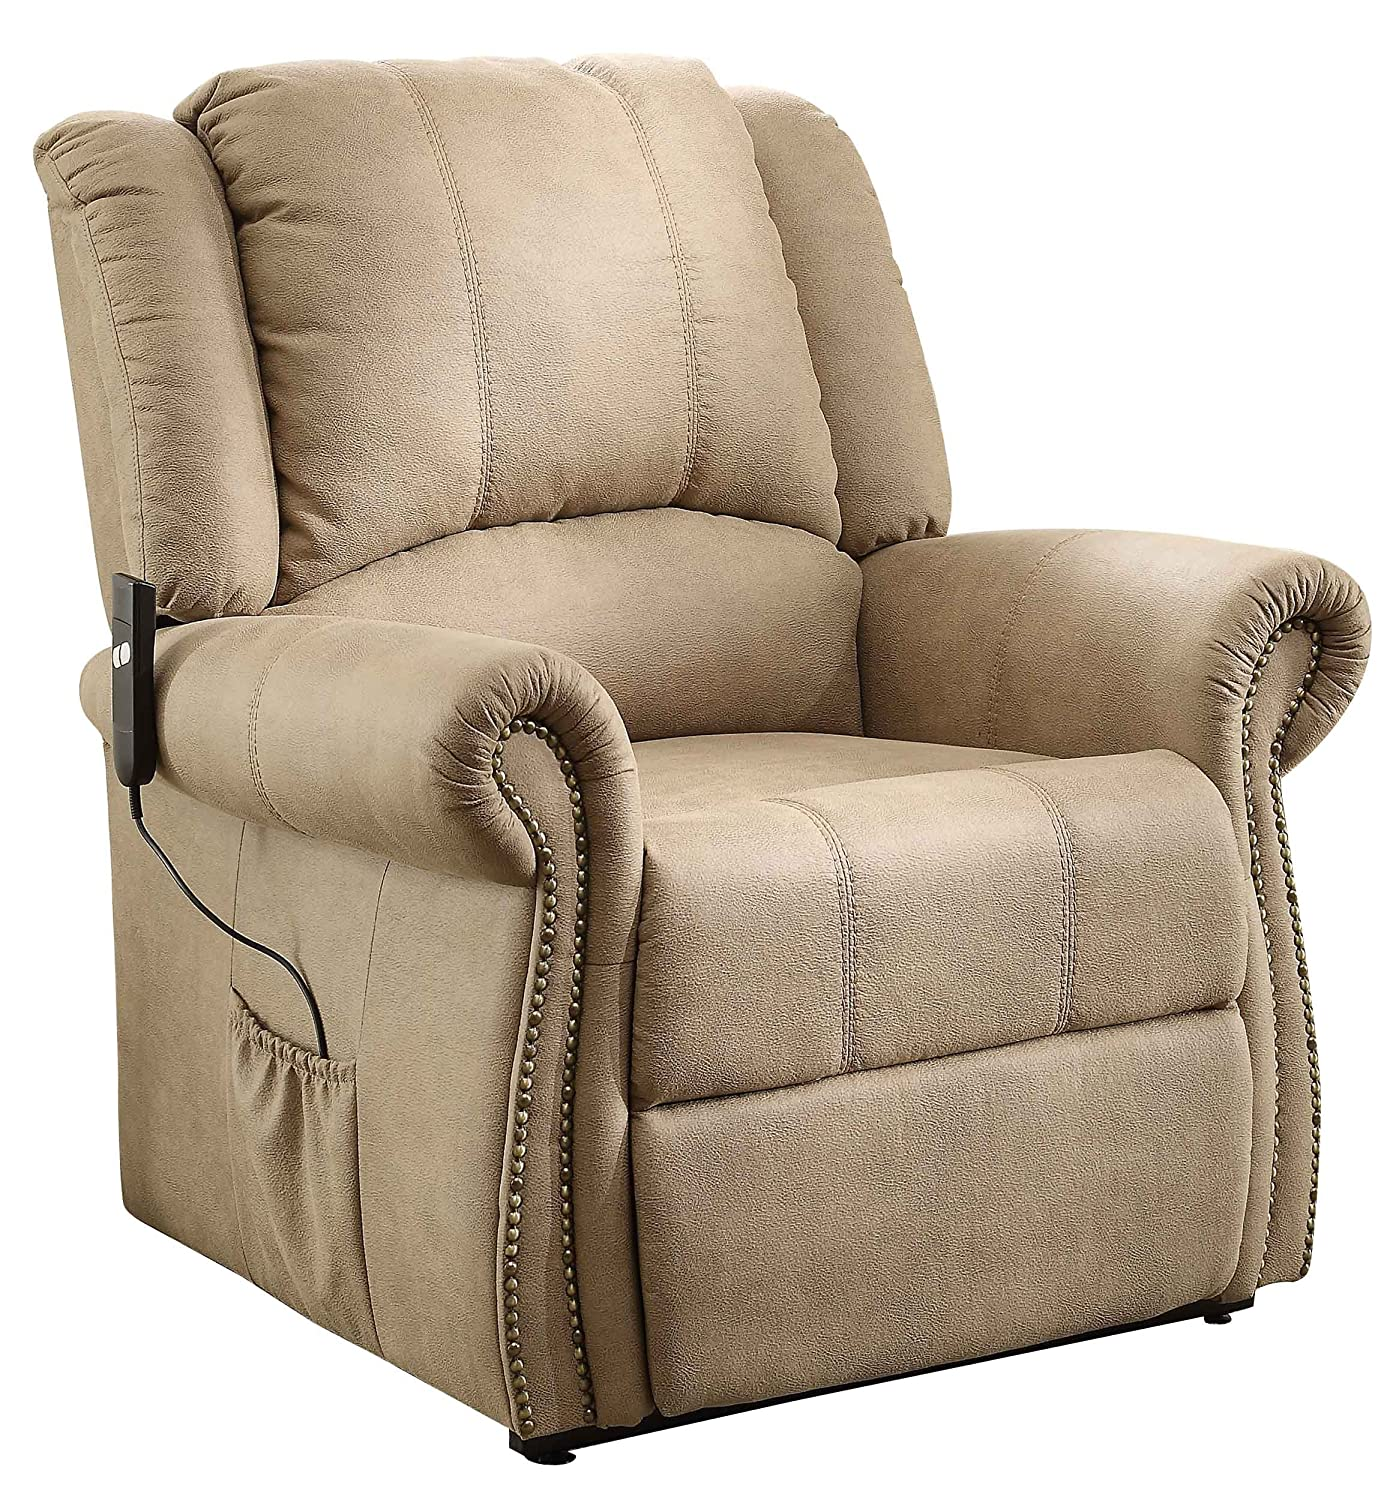 Amazon Homelegance 8437 1LT Power Lift Chair Tufted Plush